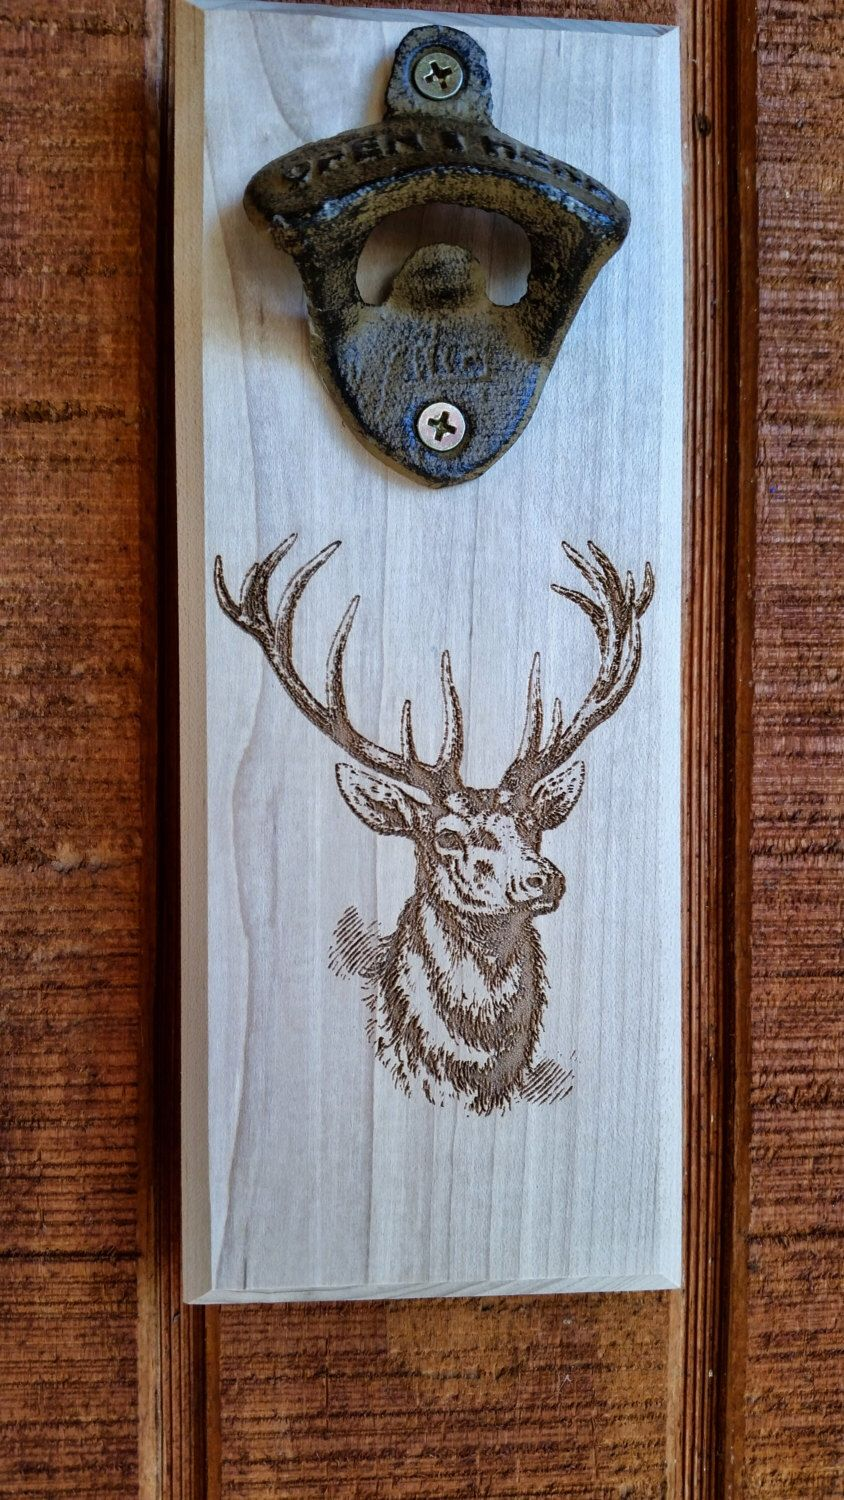 Deer wall mounted bottle opener by Barlic on Etsy https://www.etsy.com/listing/208220131/deer-wall-mounted-bottle-opener